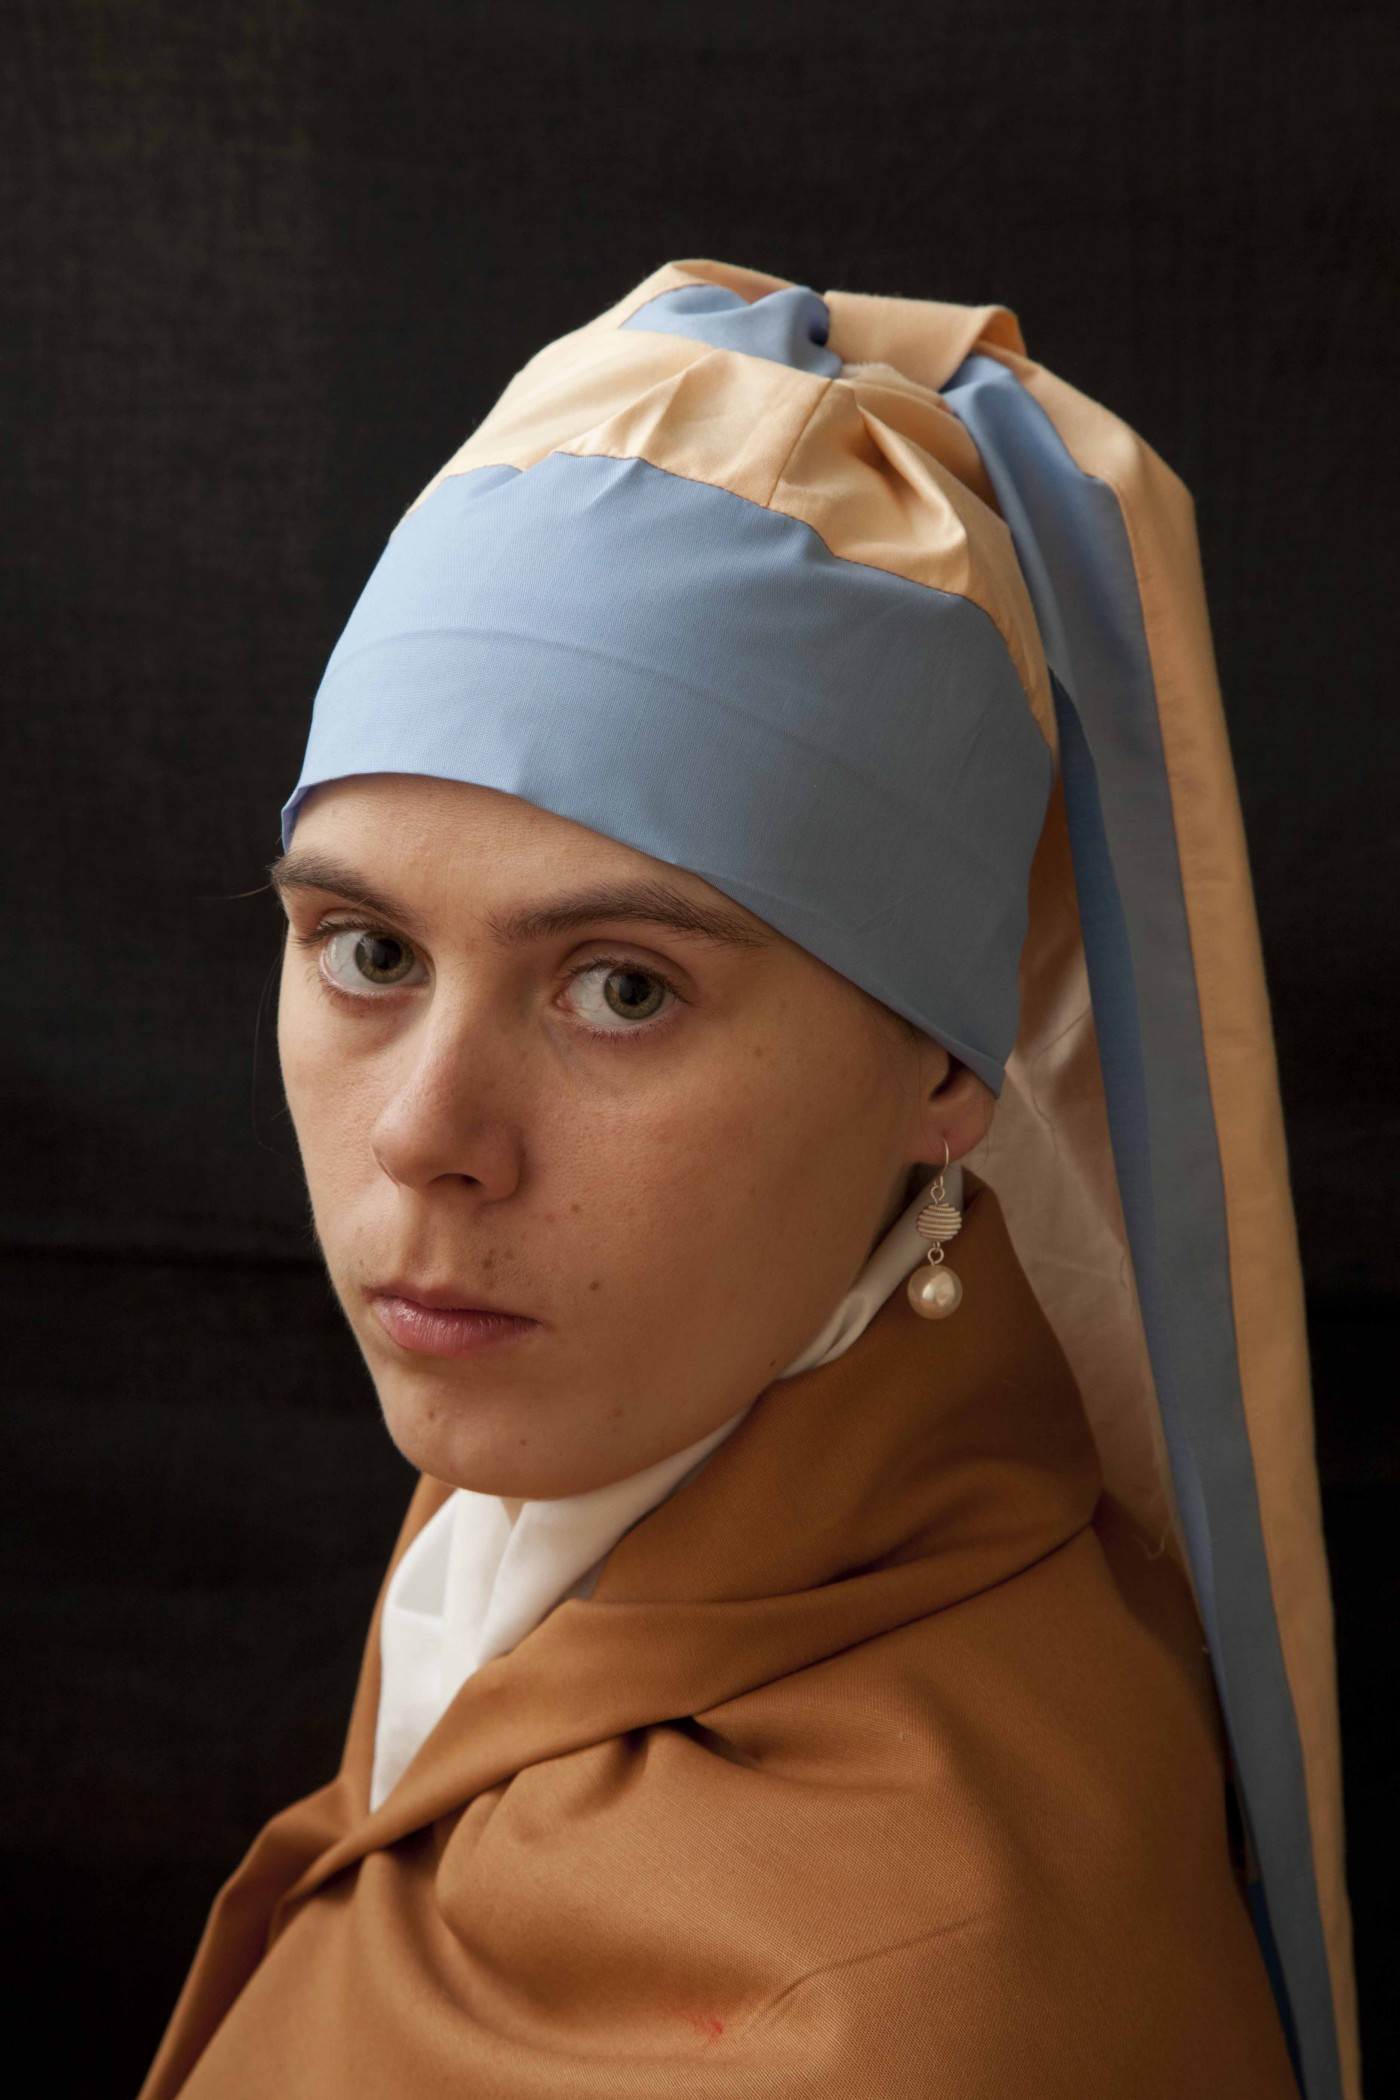 006 Od Girl With Pearl Earring Essay Outstanding A The Movie Film Review 1400